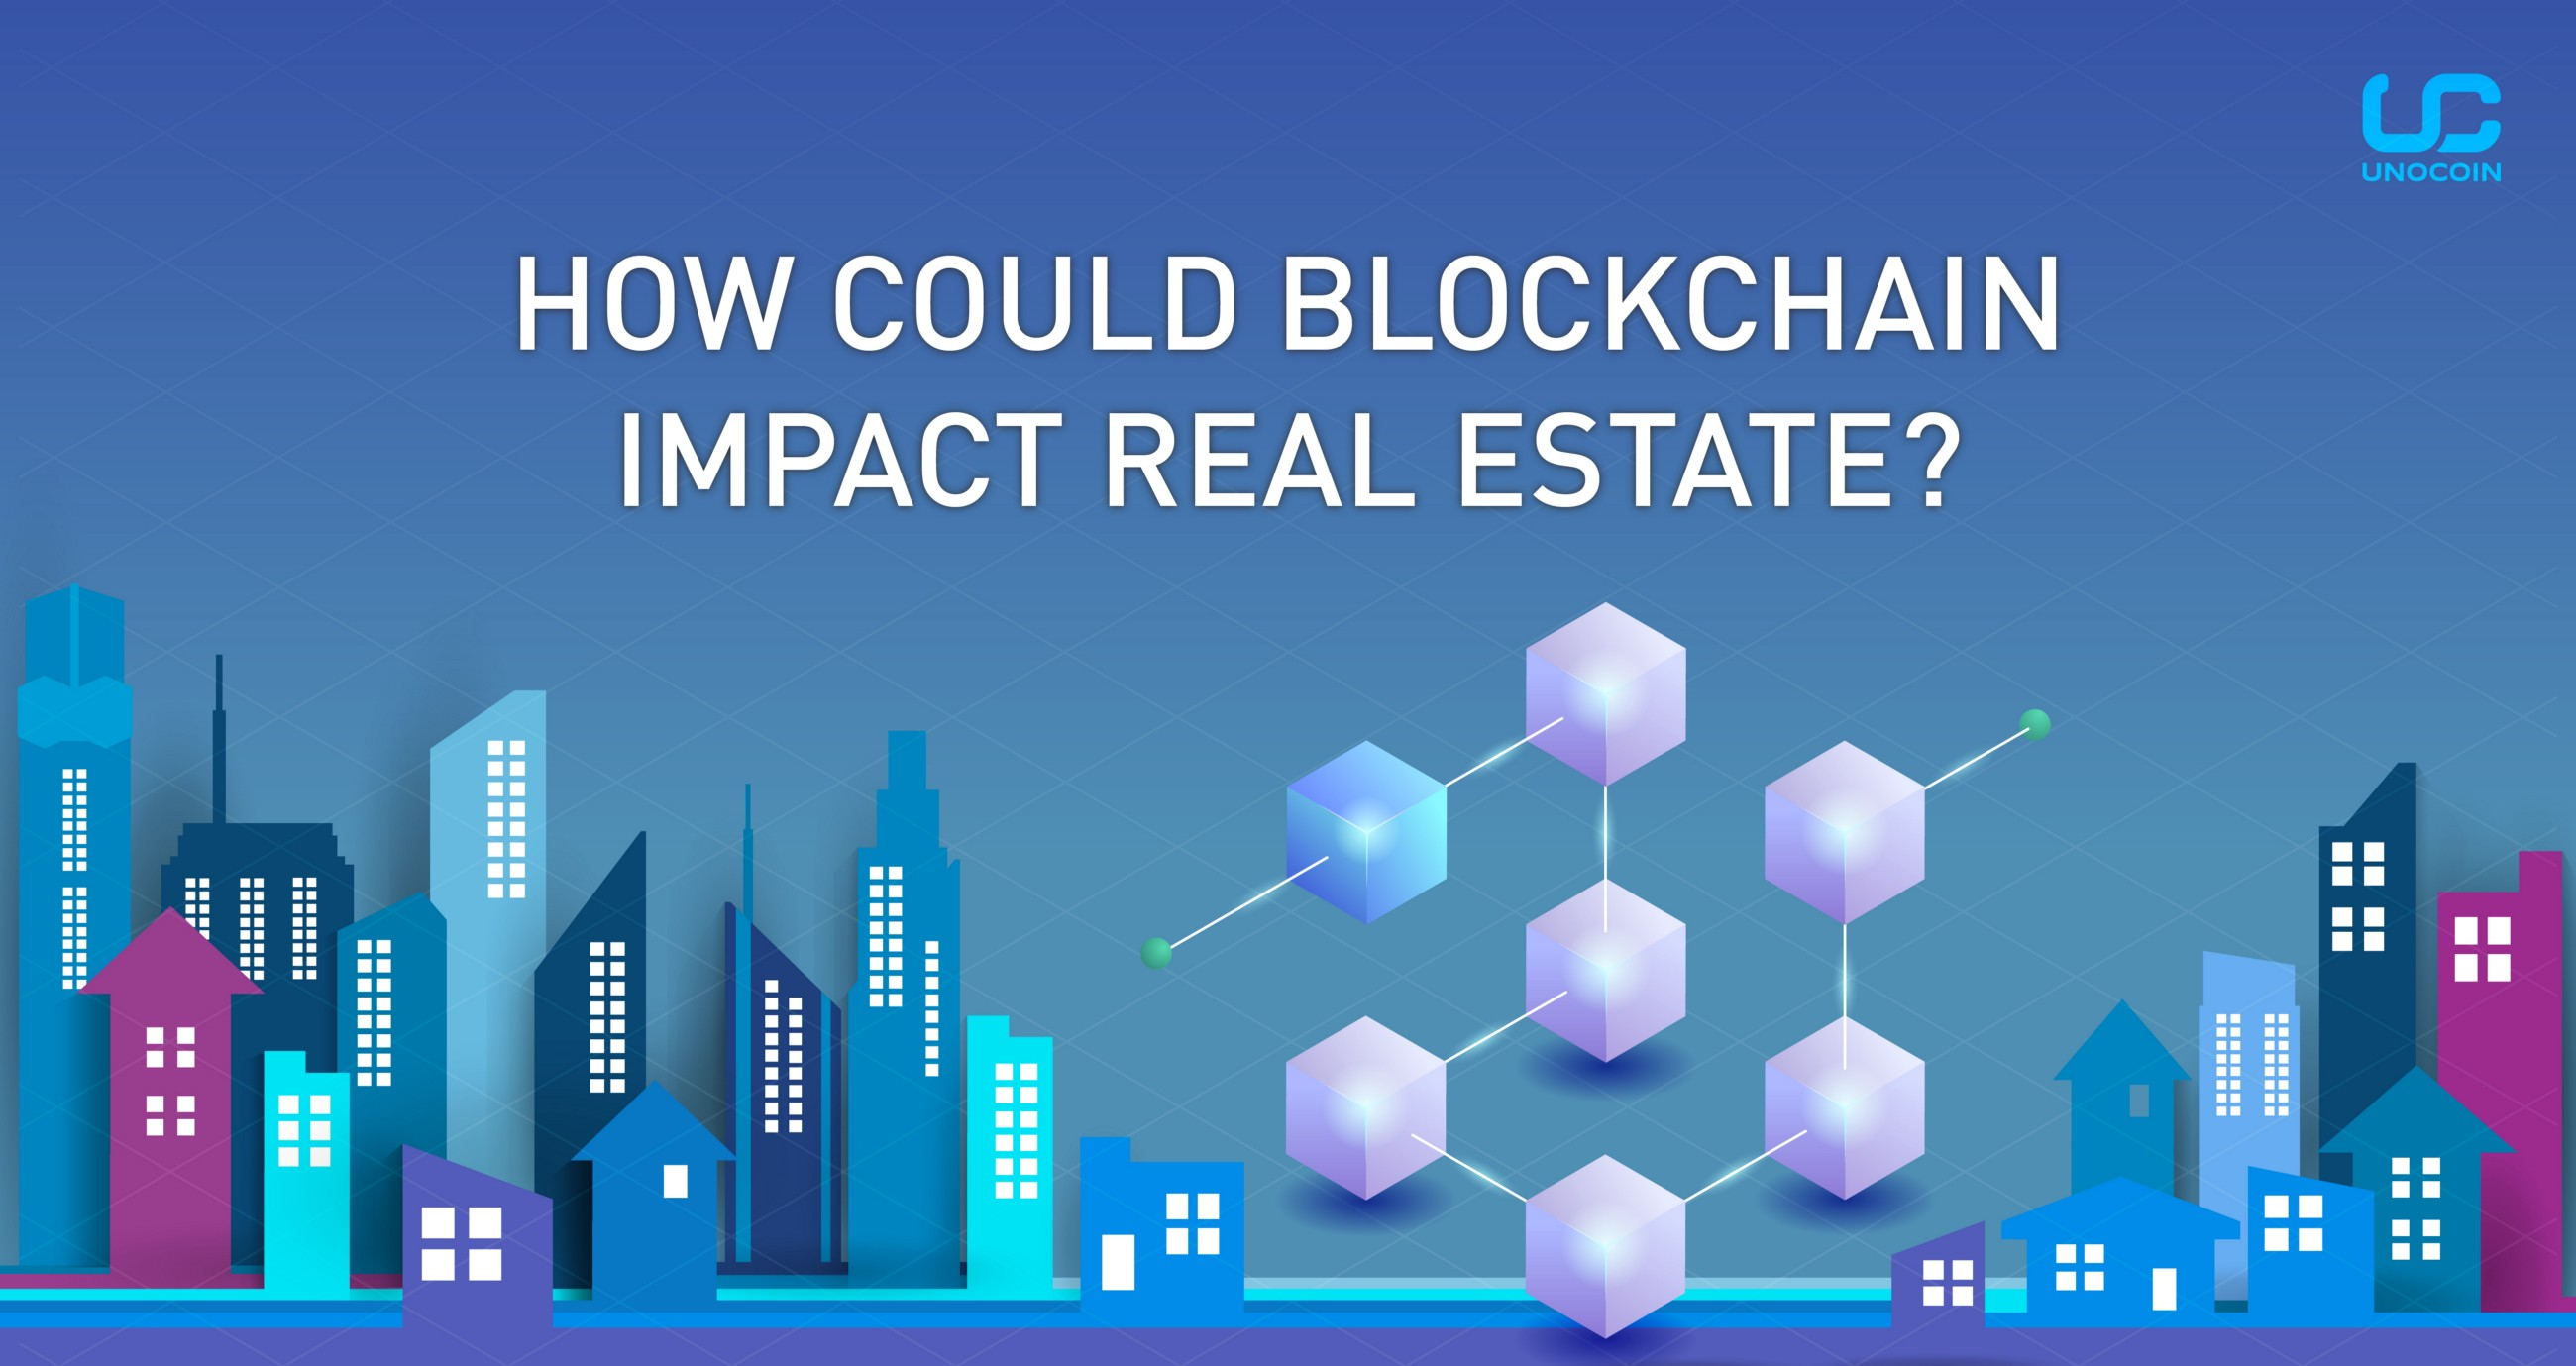 How Could Blockchain Impact Real Estate Unocoin